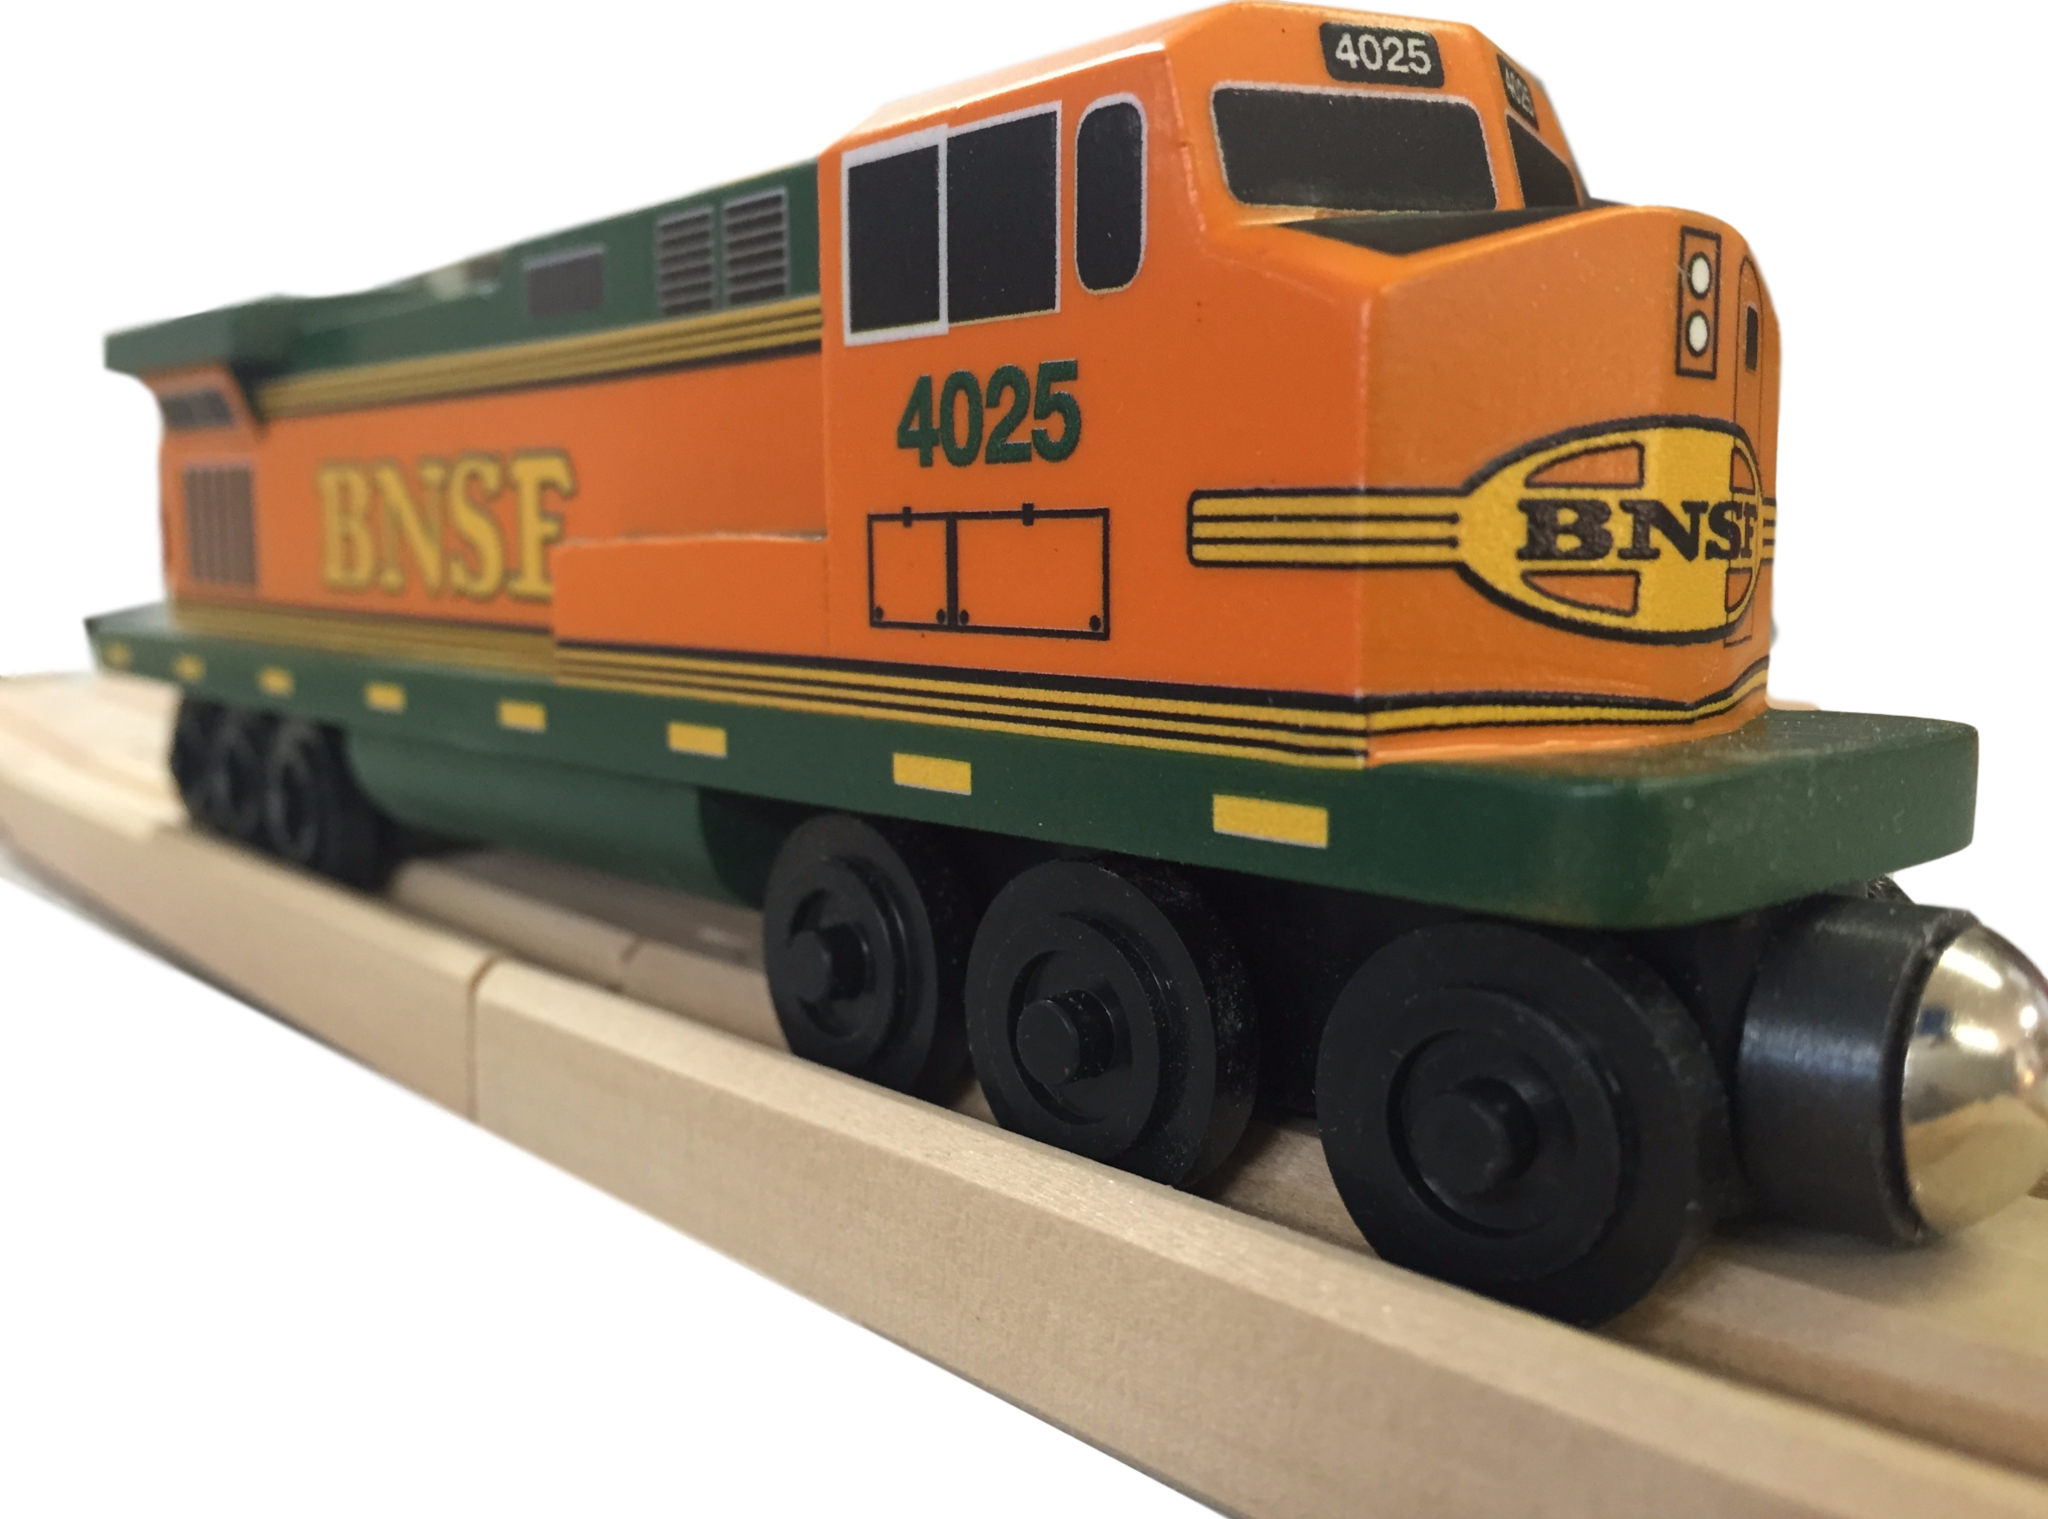 Whittle Shortline Railroad BNSF Pumpkin C-44 Diesel Engine Wooden Toy Train